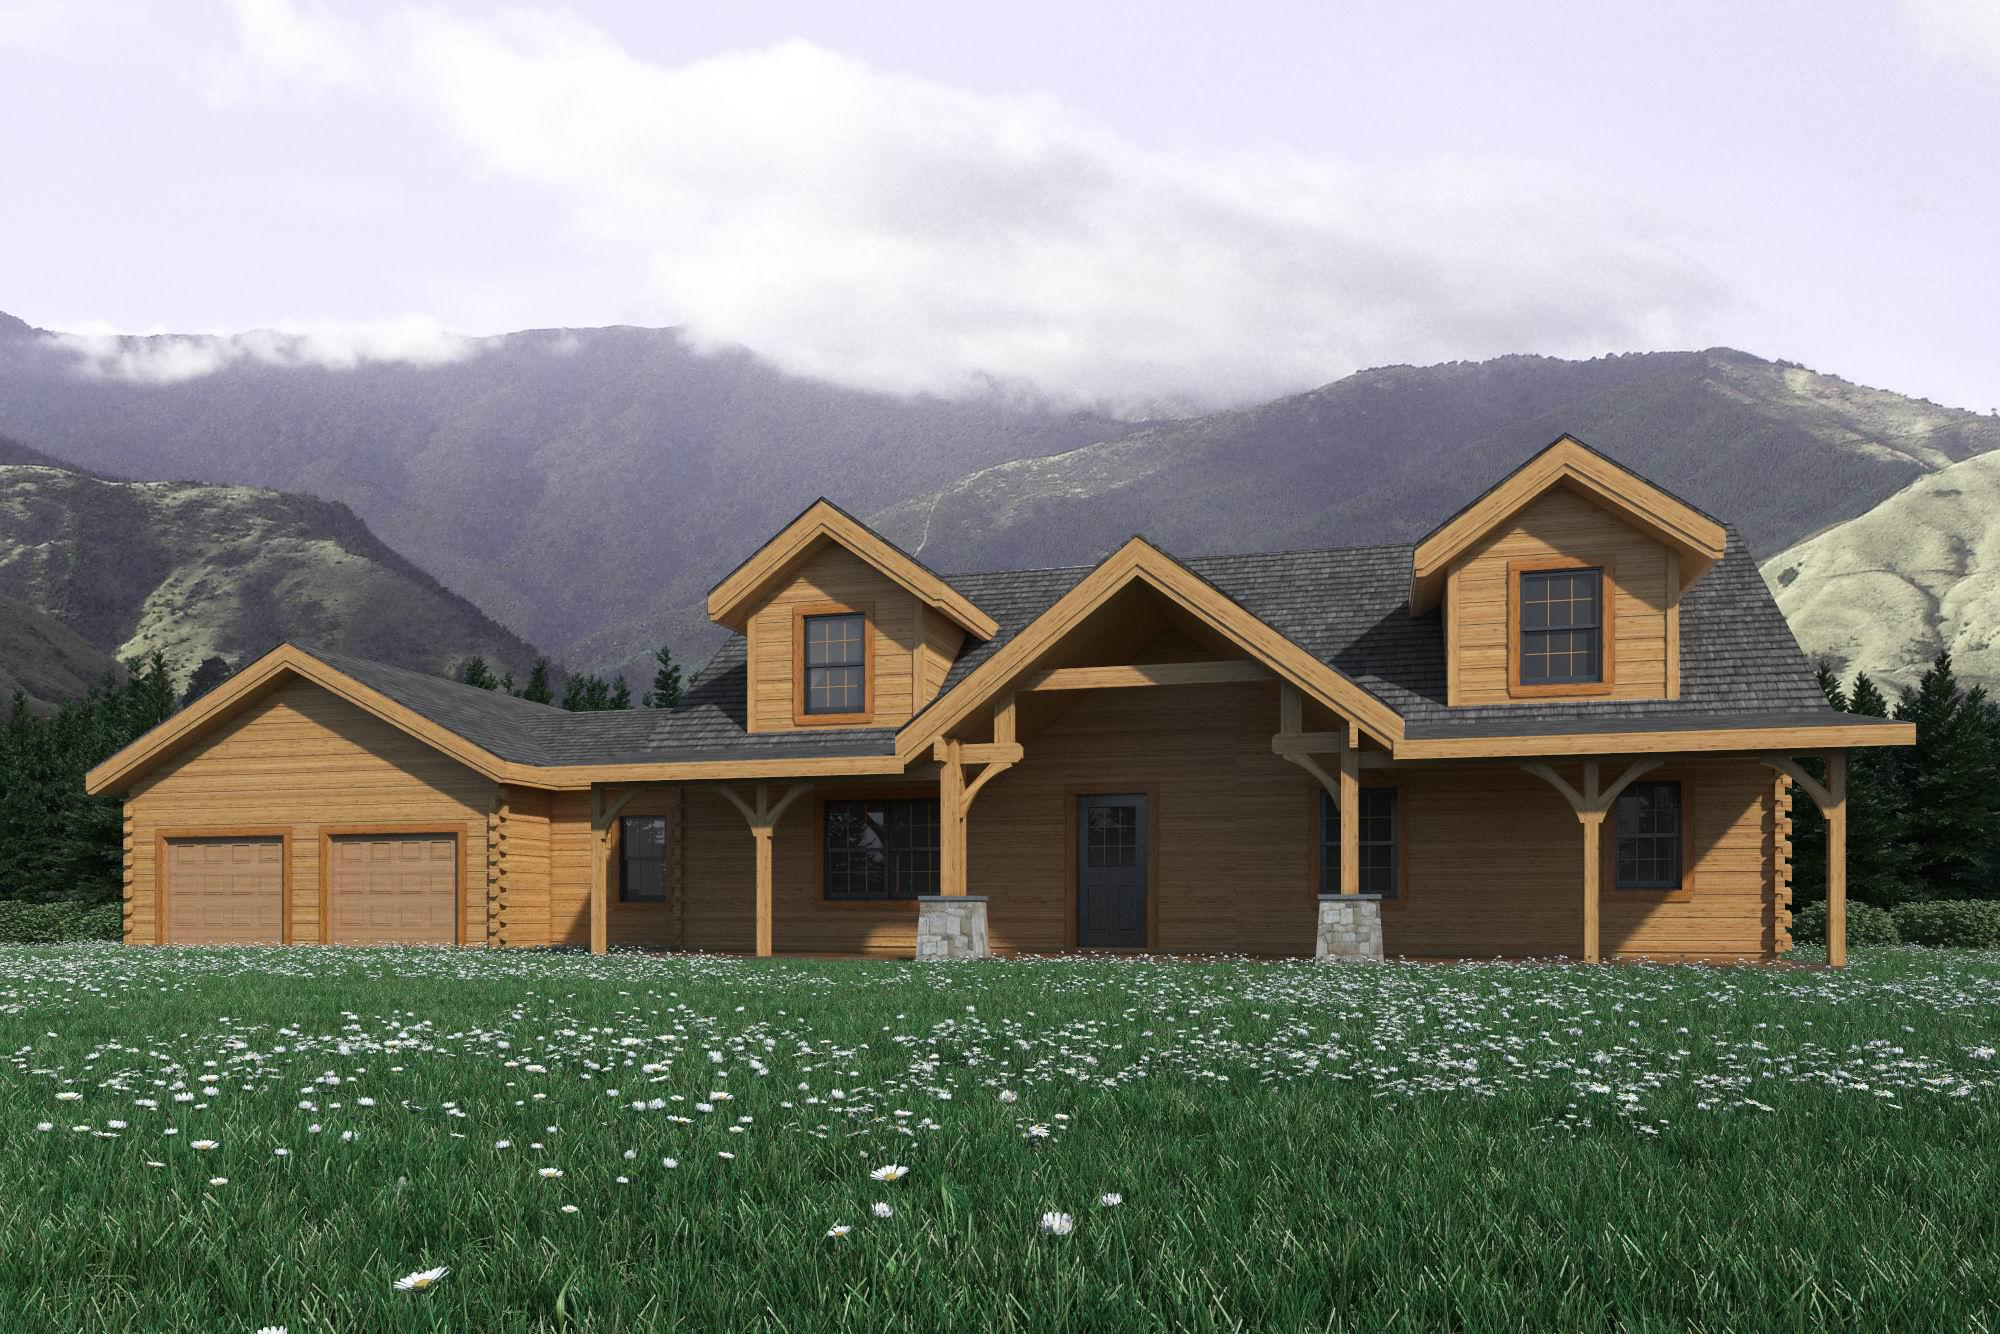 Mountain view home plan by countrymark log homes for Mountain house plans with a view